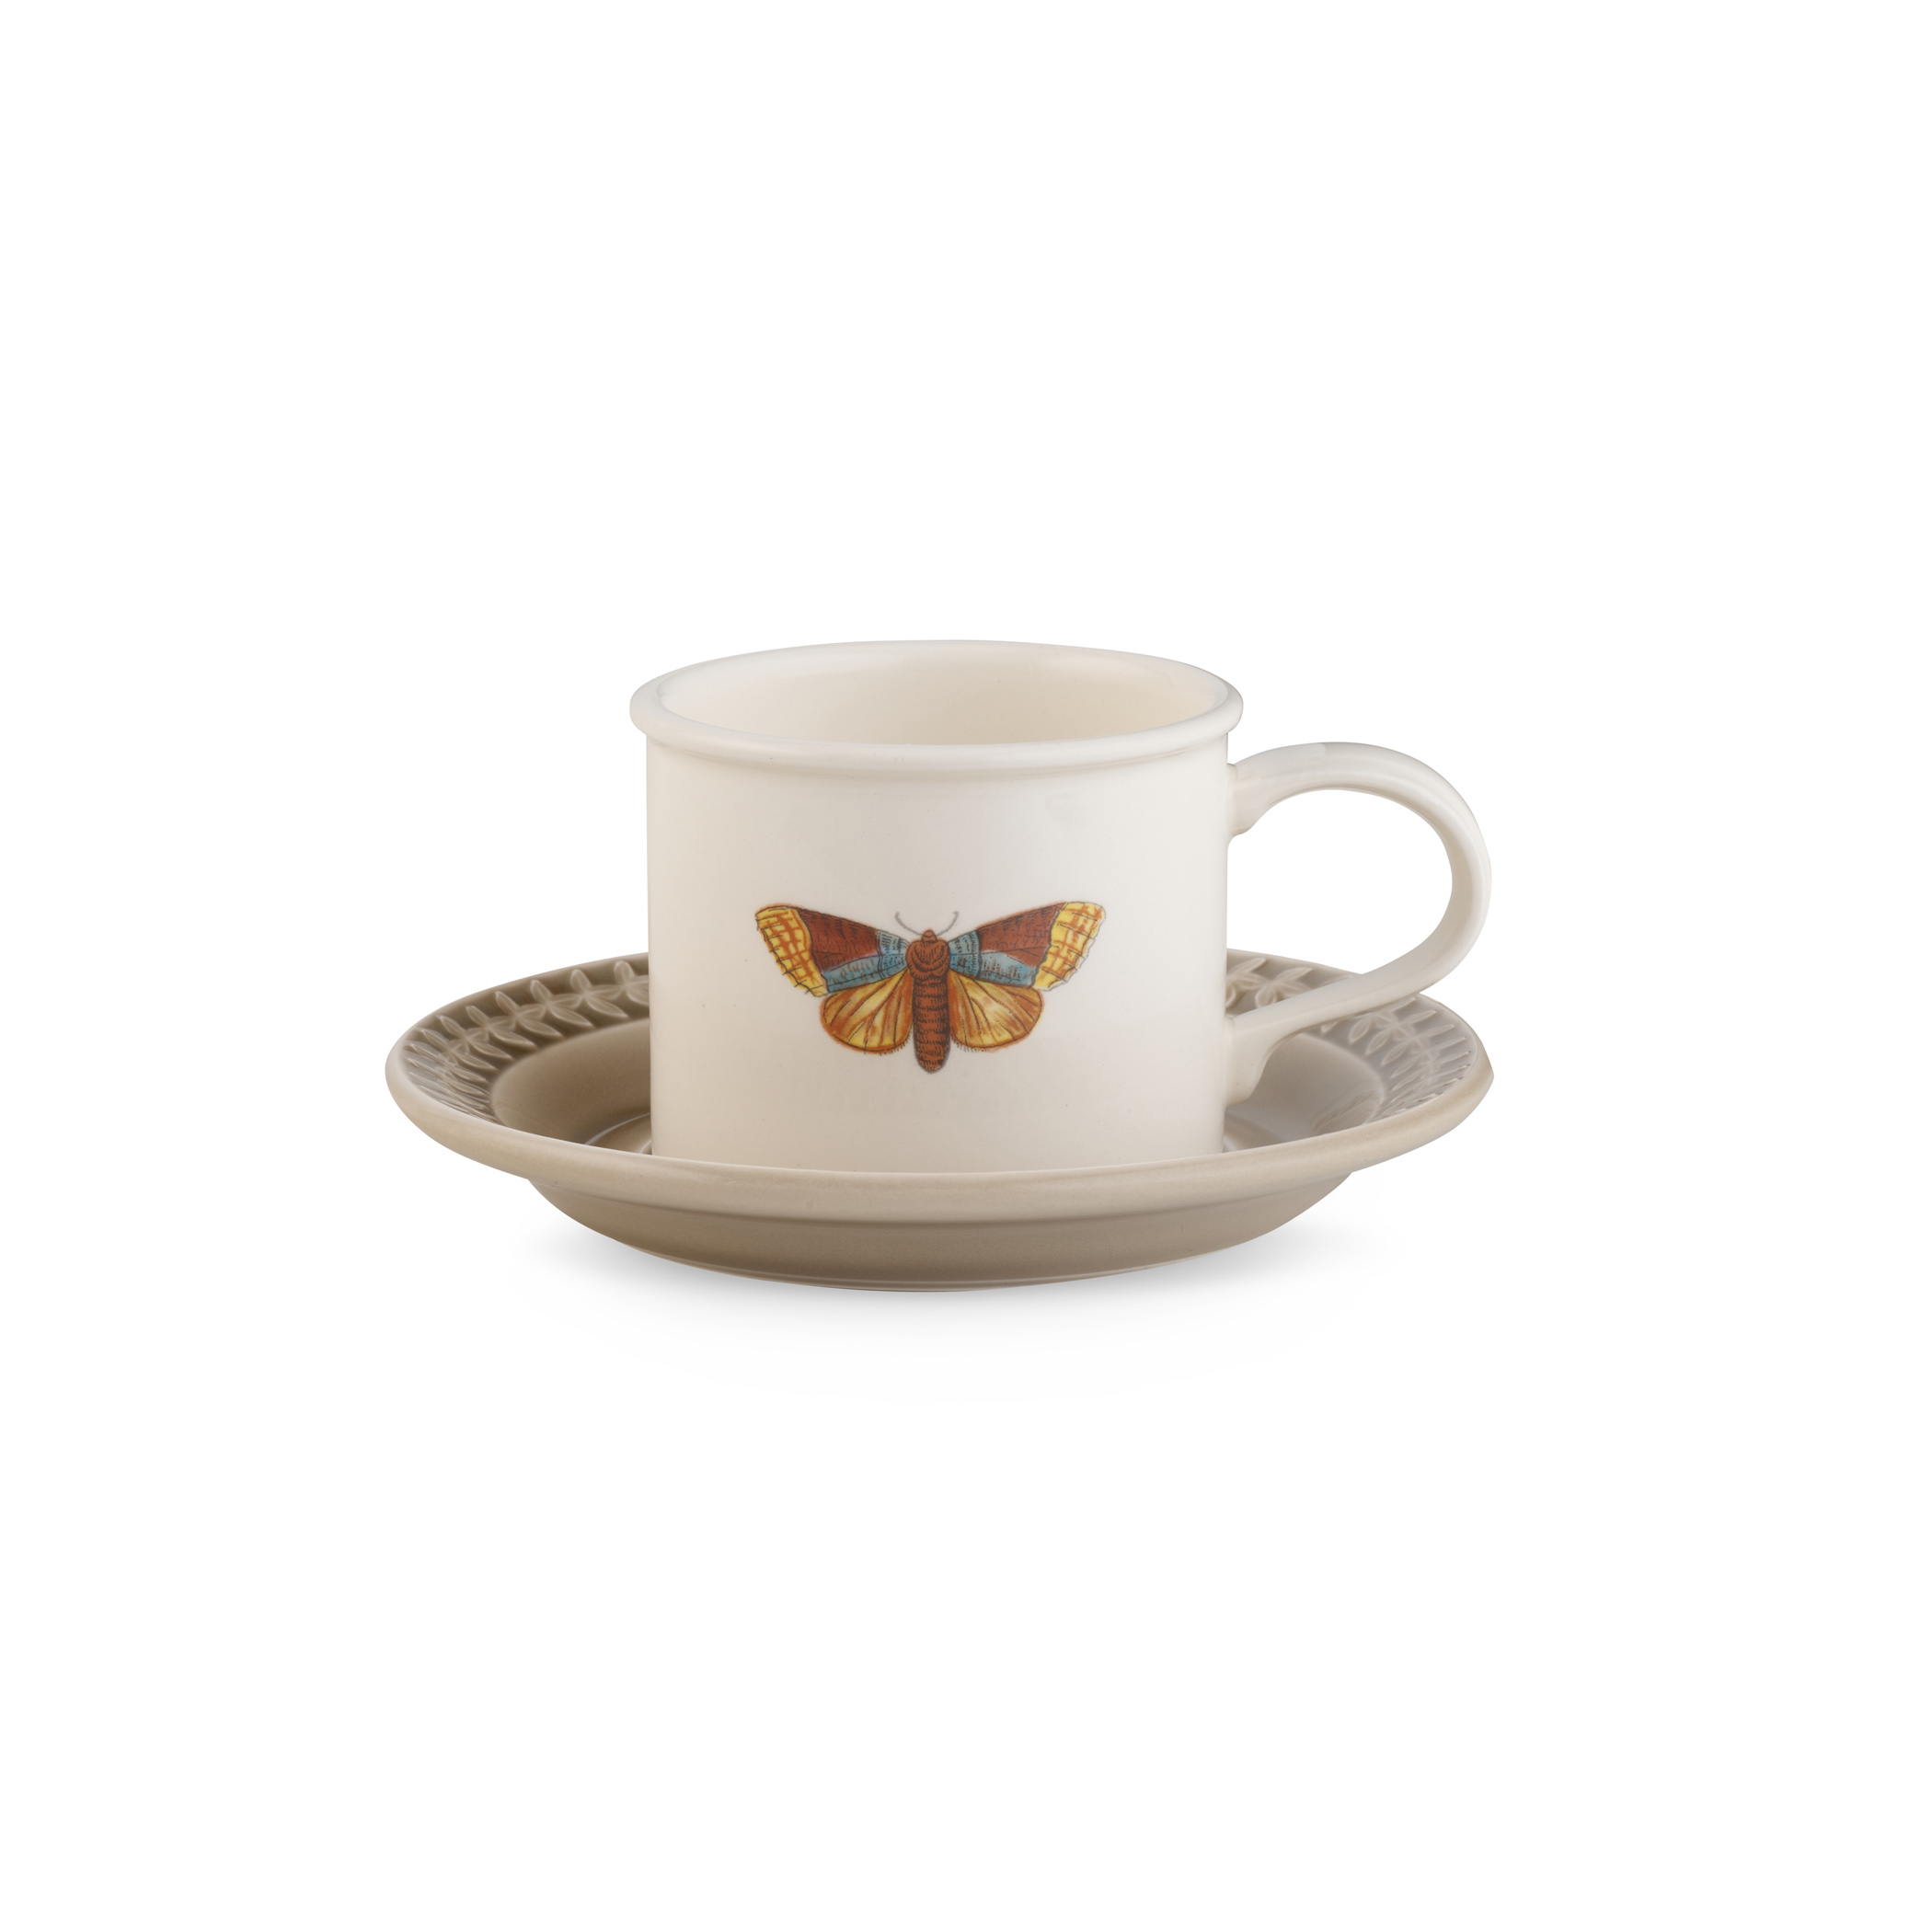 Botanic Garden Harmony Papilio Opal Breakfast Cup and Saucer image number 2